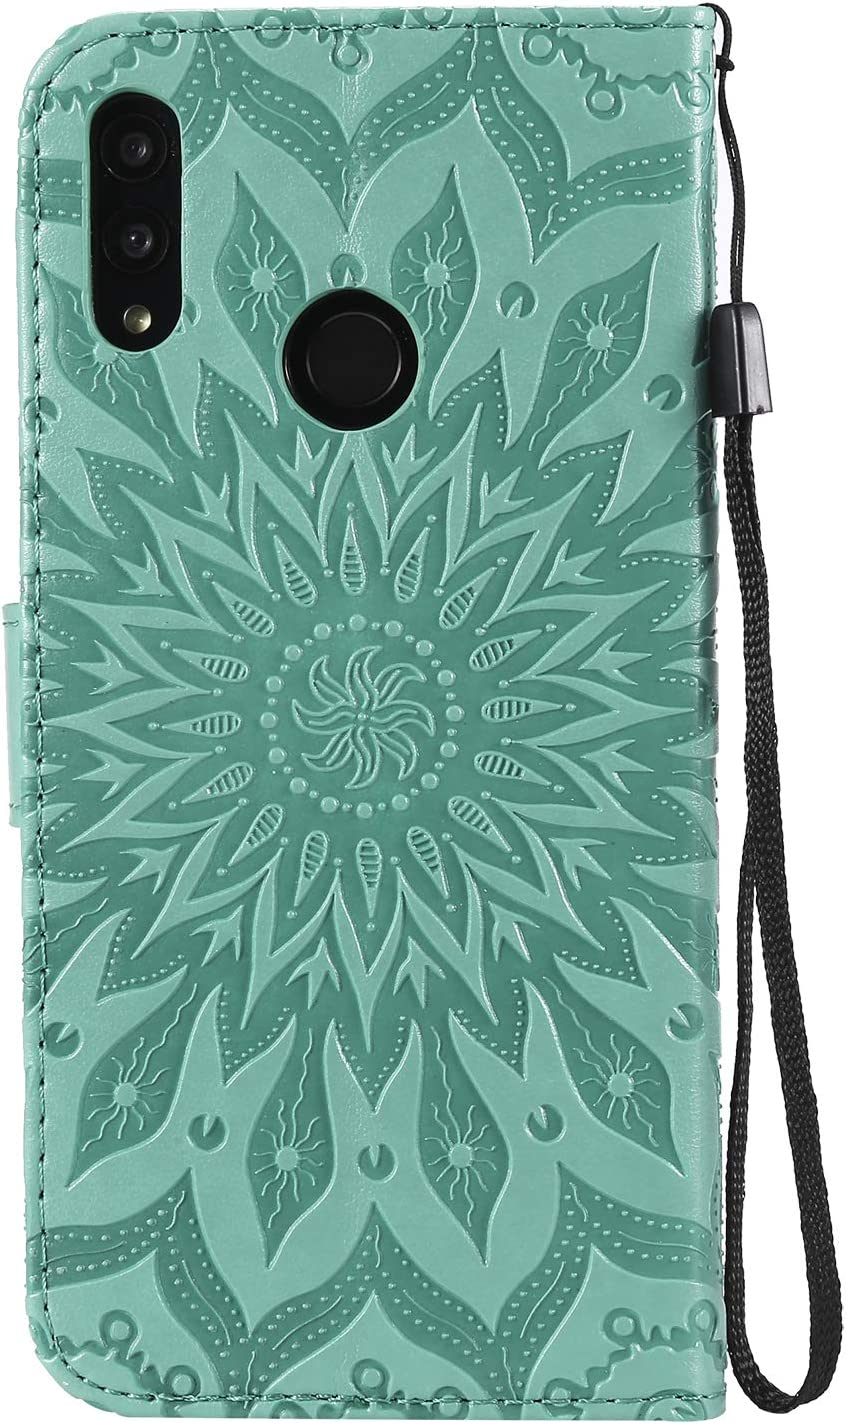 Herbests Compatible with Huawei P Smart 2019 Wallet Case Emboss Sunflower Folio Flip Leather Cover with Card Slots /& Kickstand Full Body Protective Cover Wrist Strap Magnetic Closure,Green